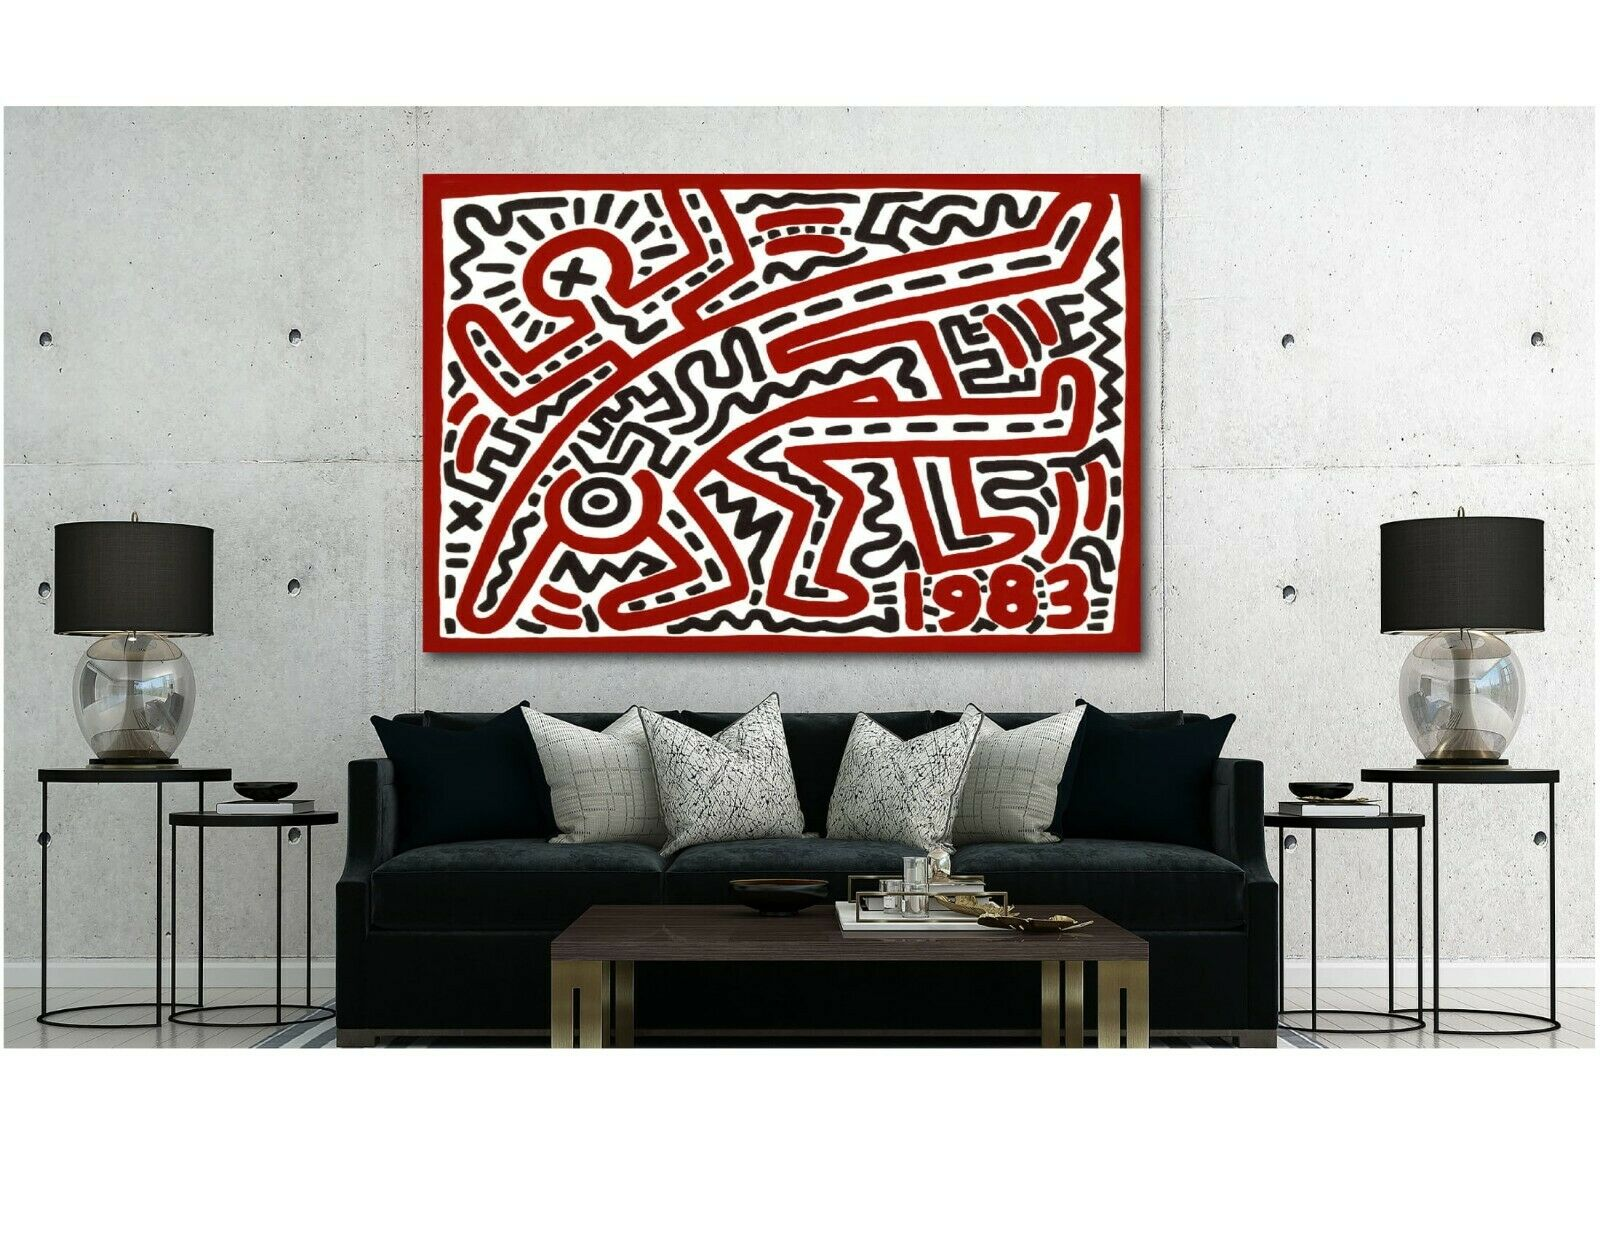 Keith Haring - 1983 - Pop Art - Canvas Wall Art Print - Various Größes